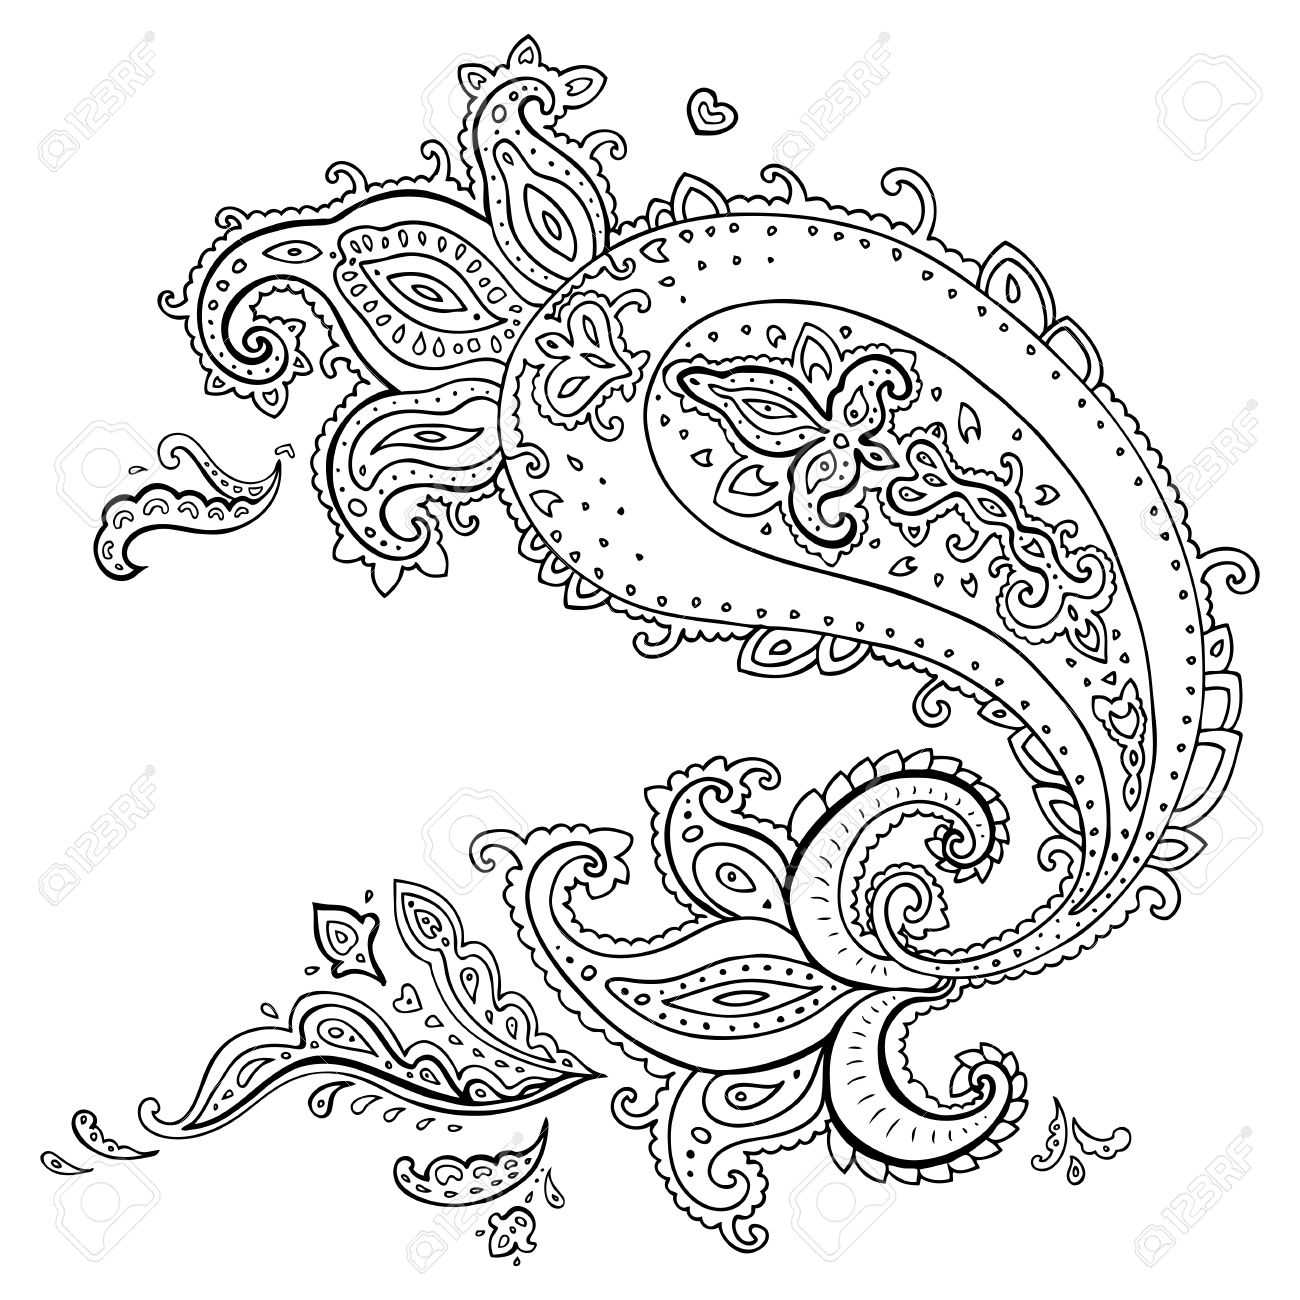 Paisley Ethnic Ornament Vector Illustration Isolated Royalty Free ...